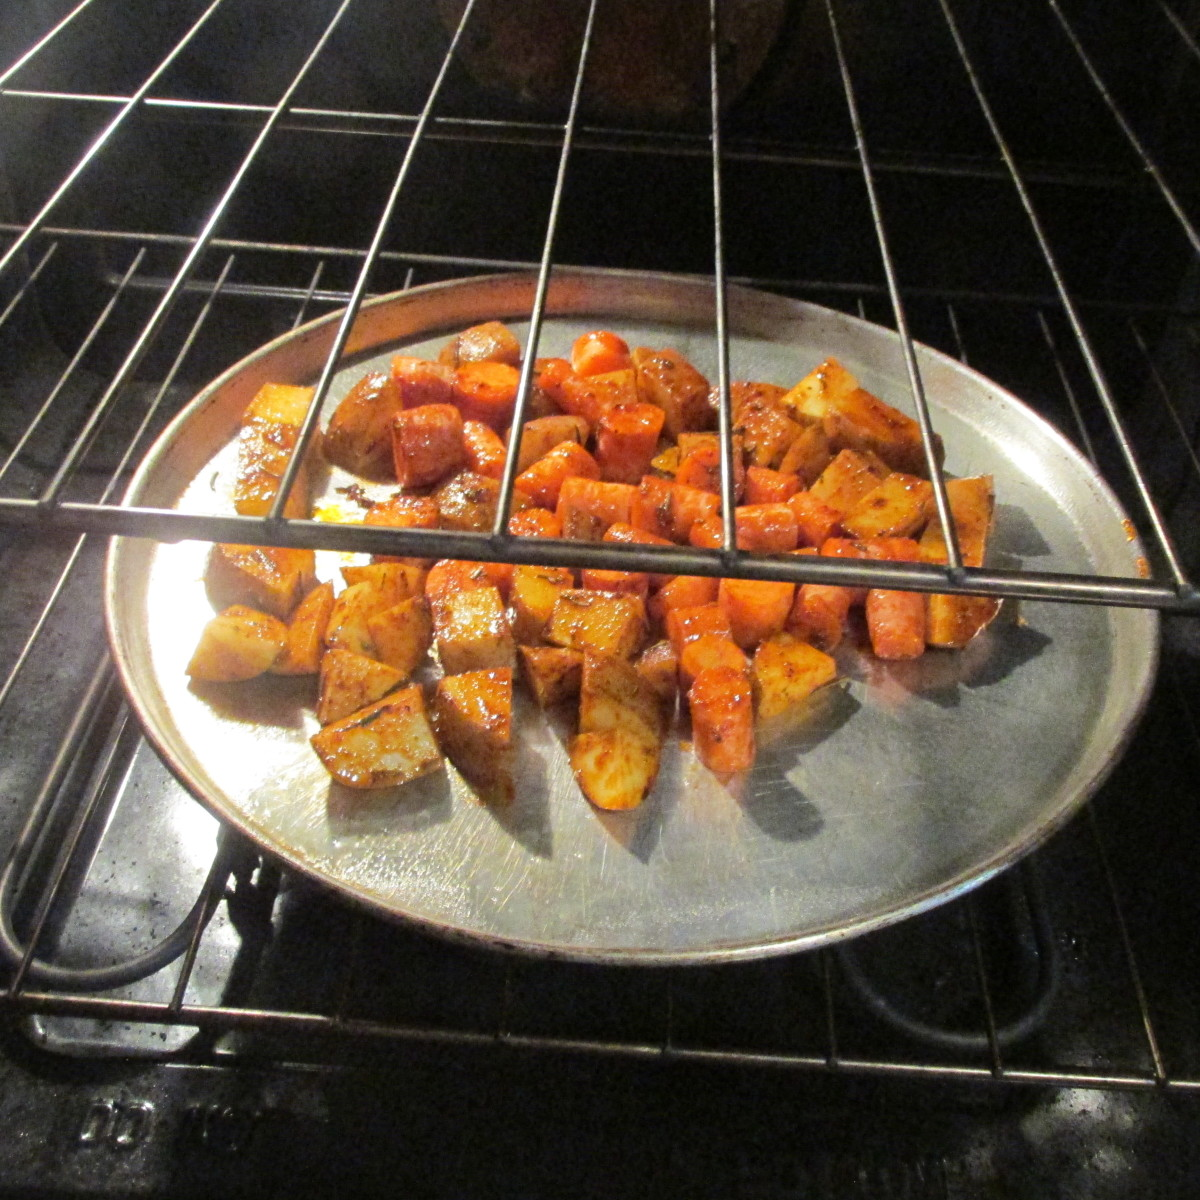 Vegetables in the oven